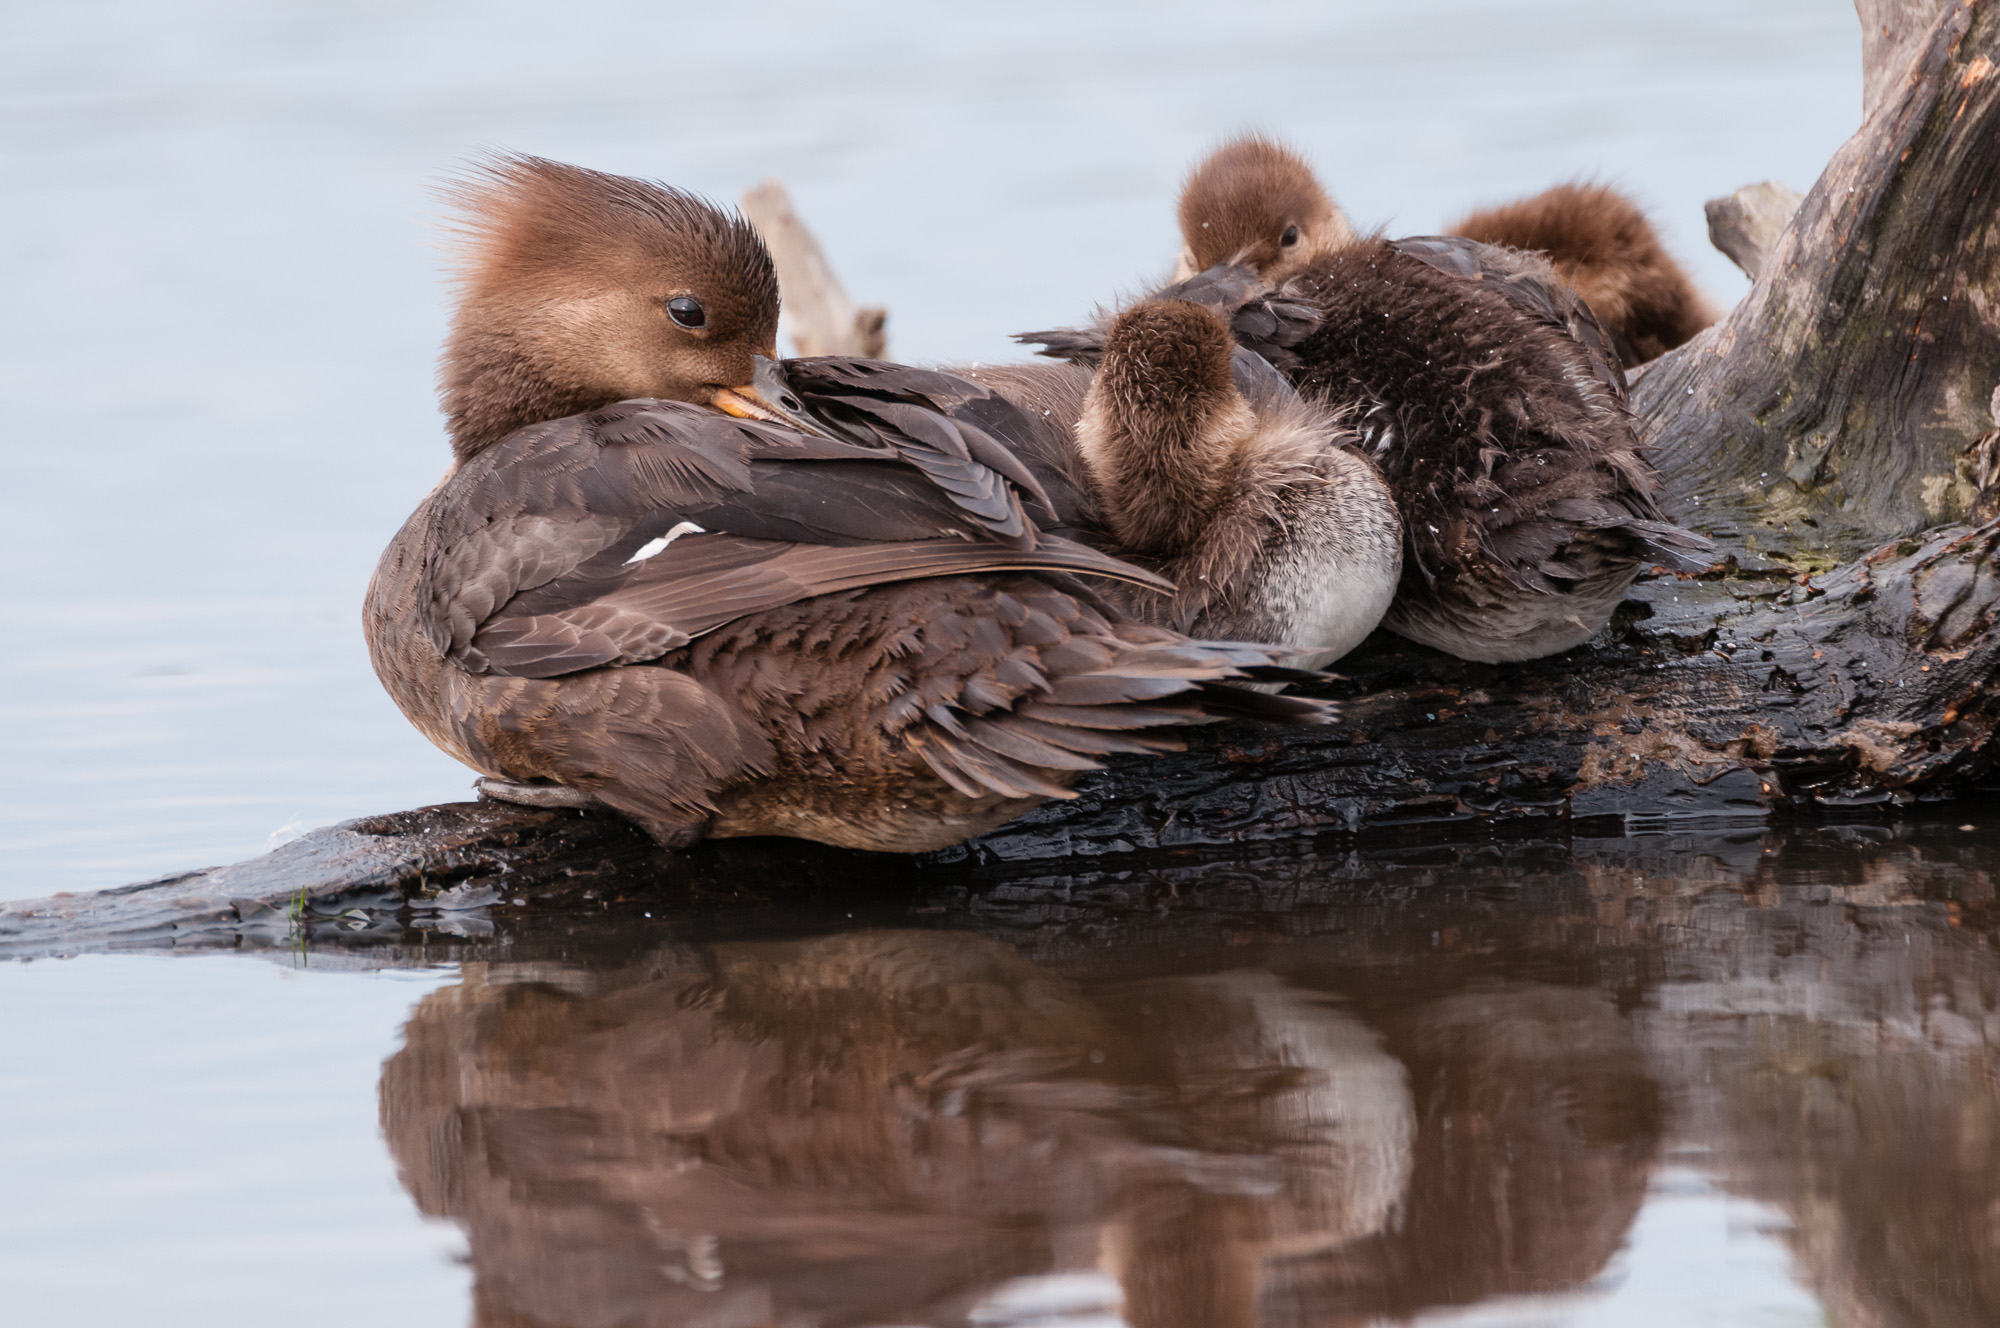 The Hooded Merganser mother looks my way one more time before closing her eyes and napping with her young family.